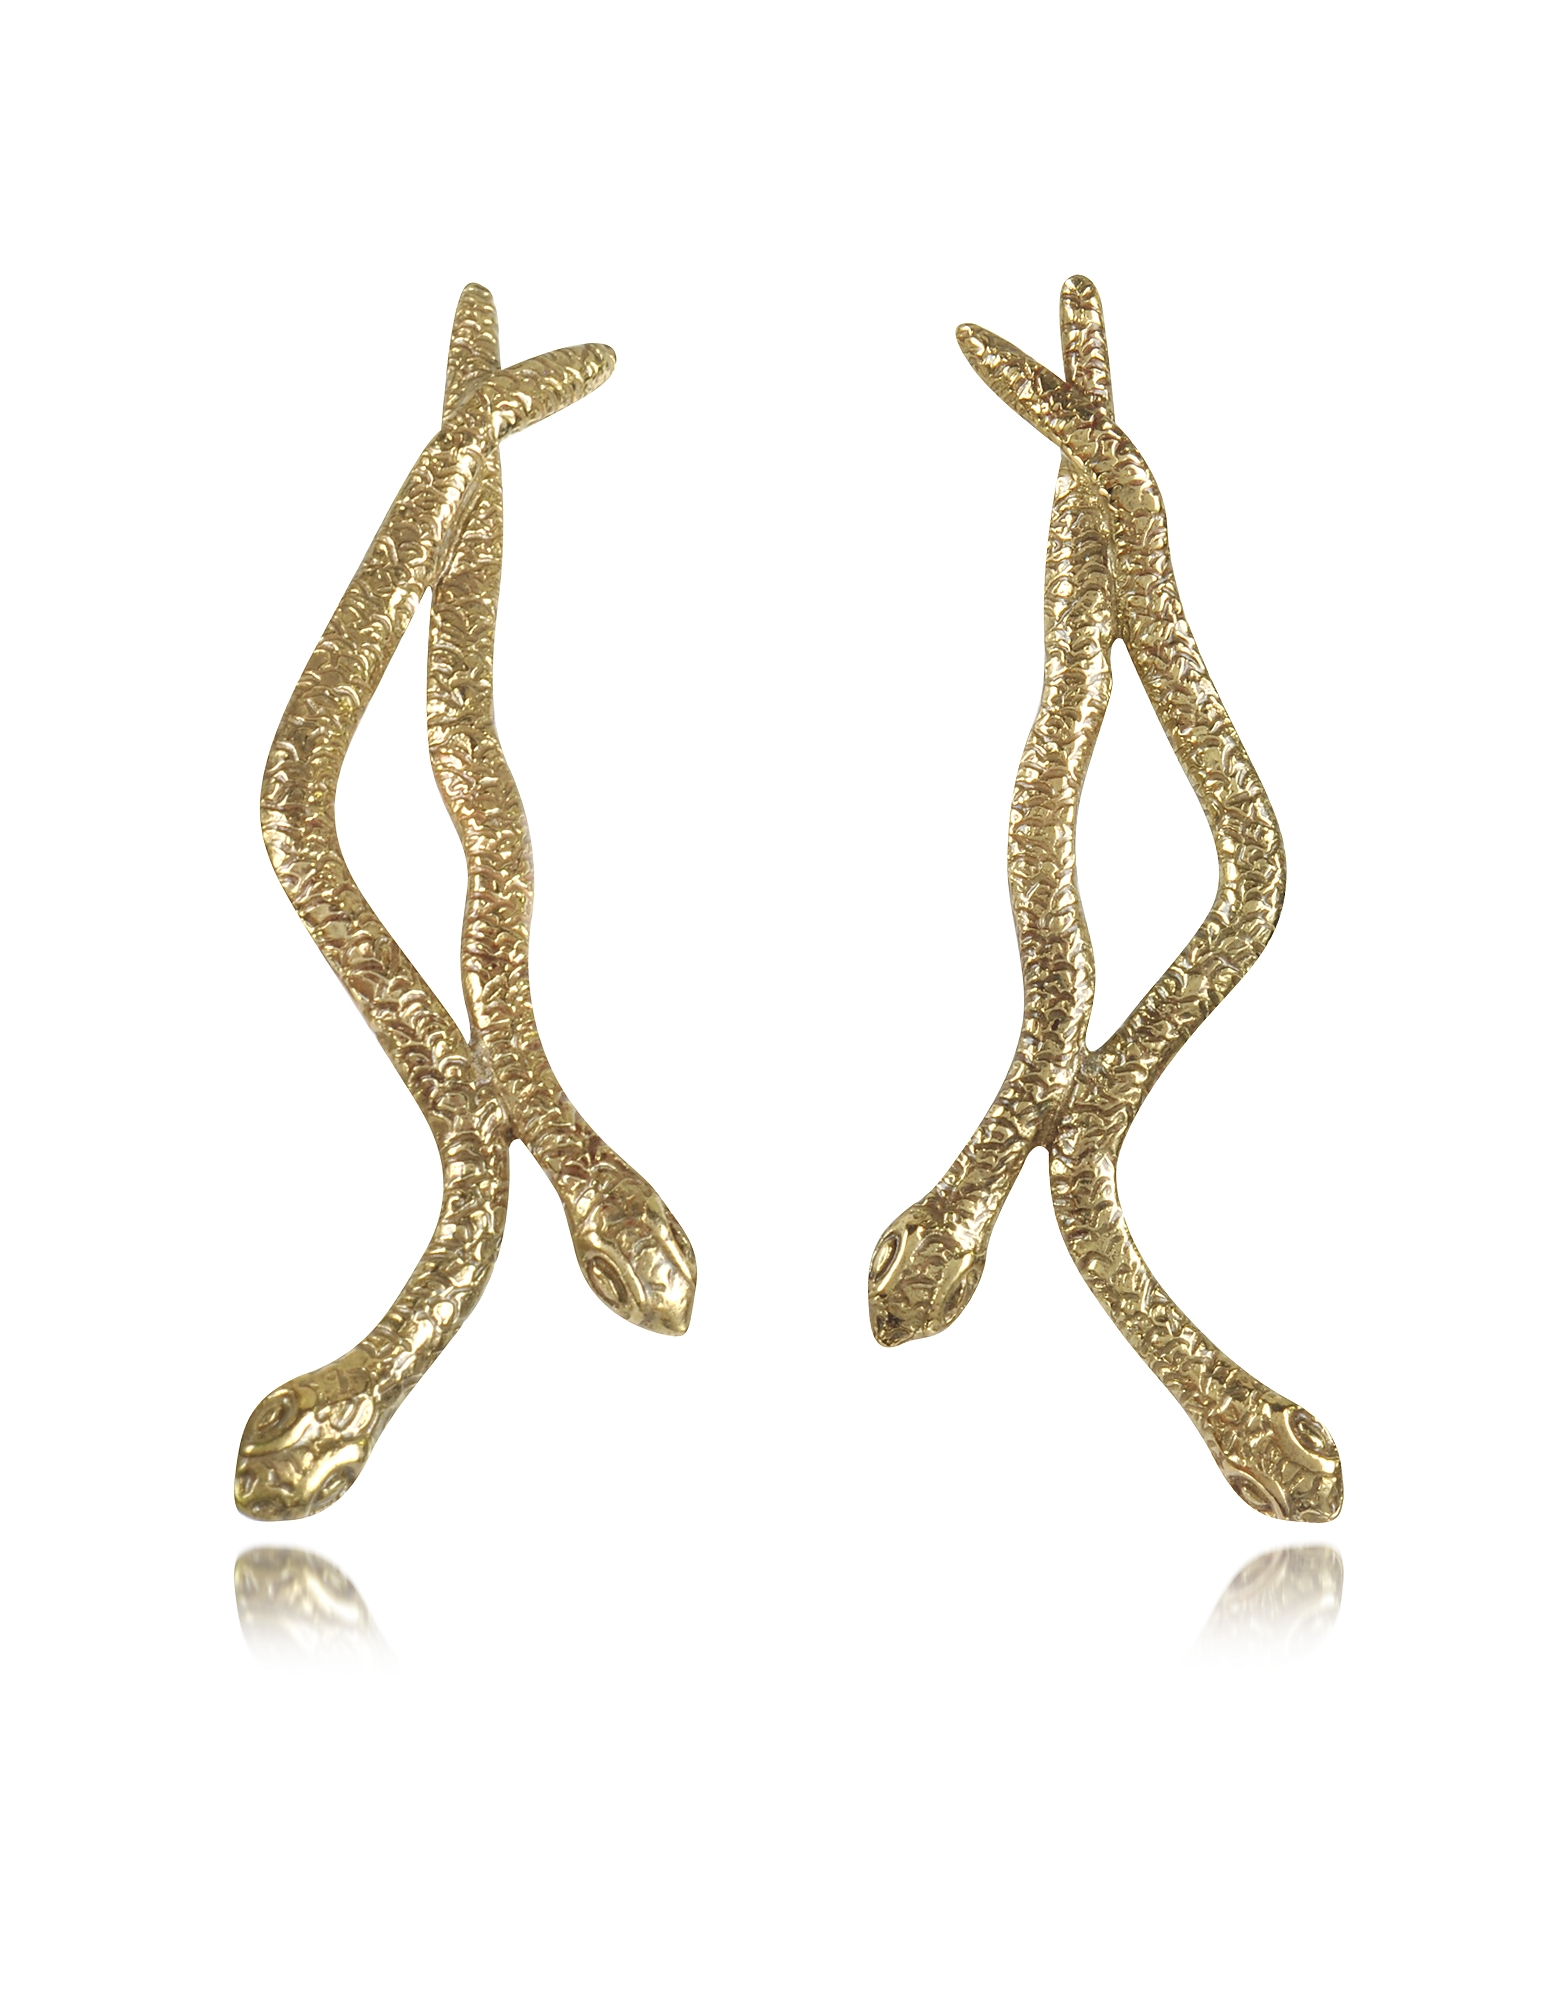 Bernard Delettrez Earrings, Snakes Bronze Earrings